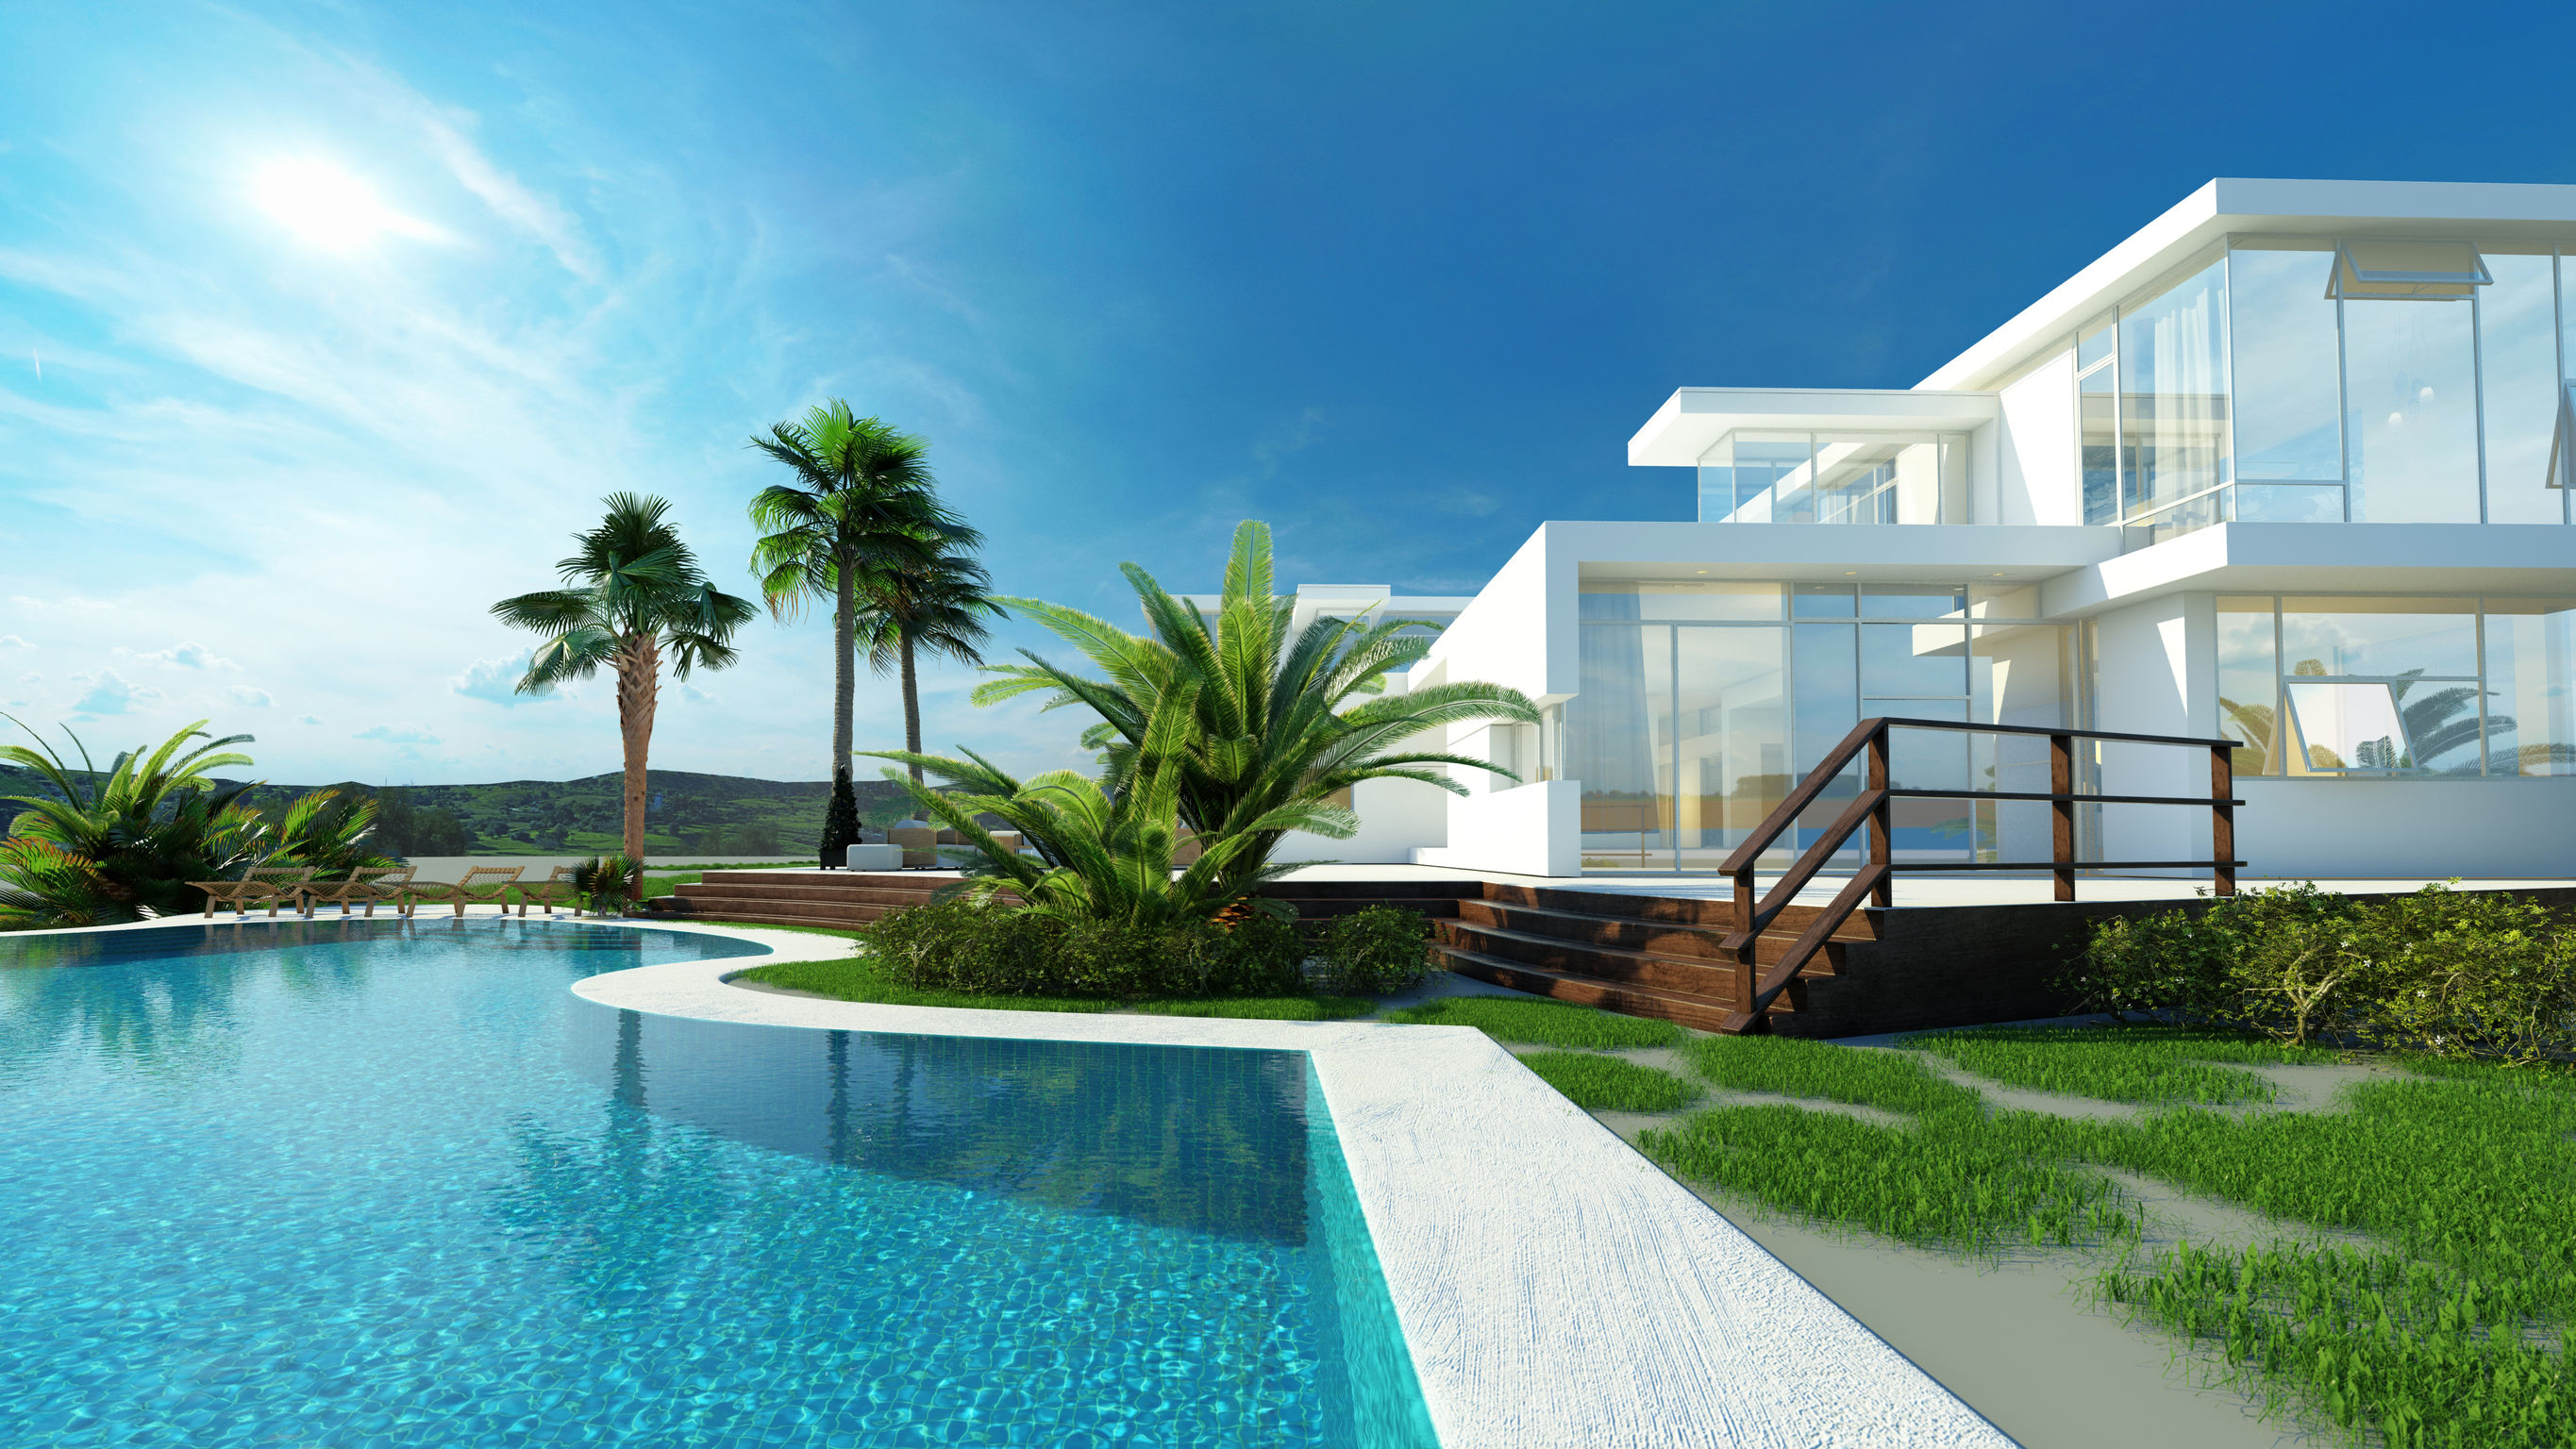 Swimming pools add value to south florida homes when well for Florida house plans with pool